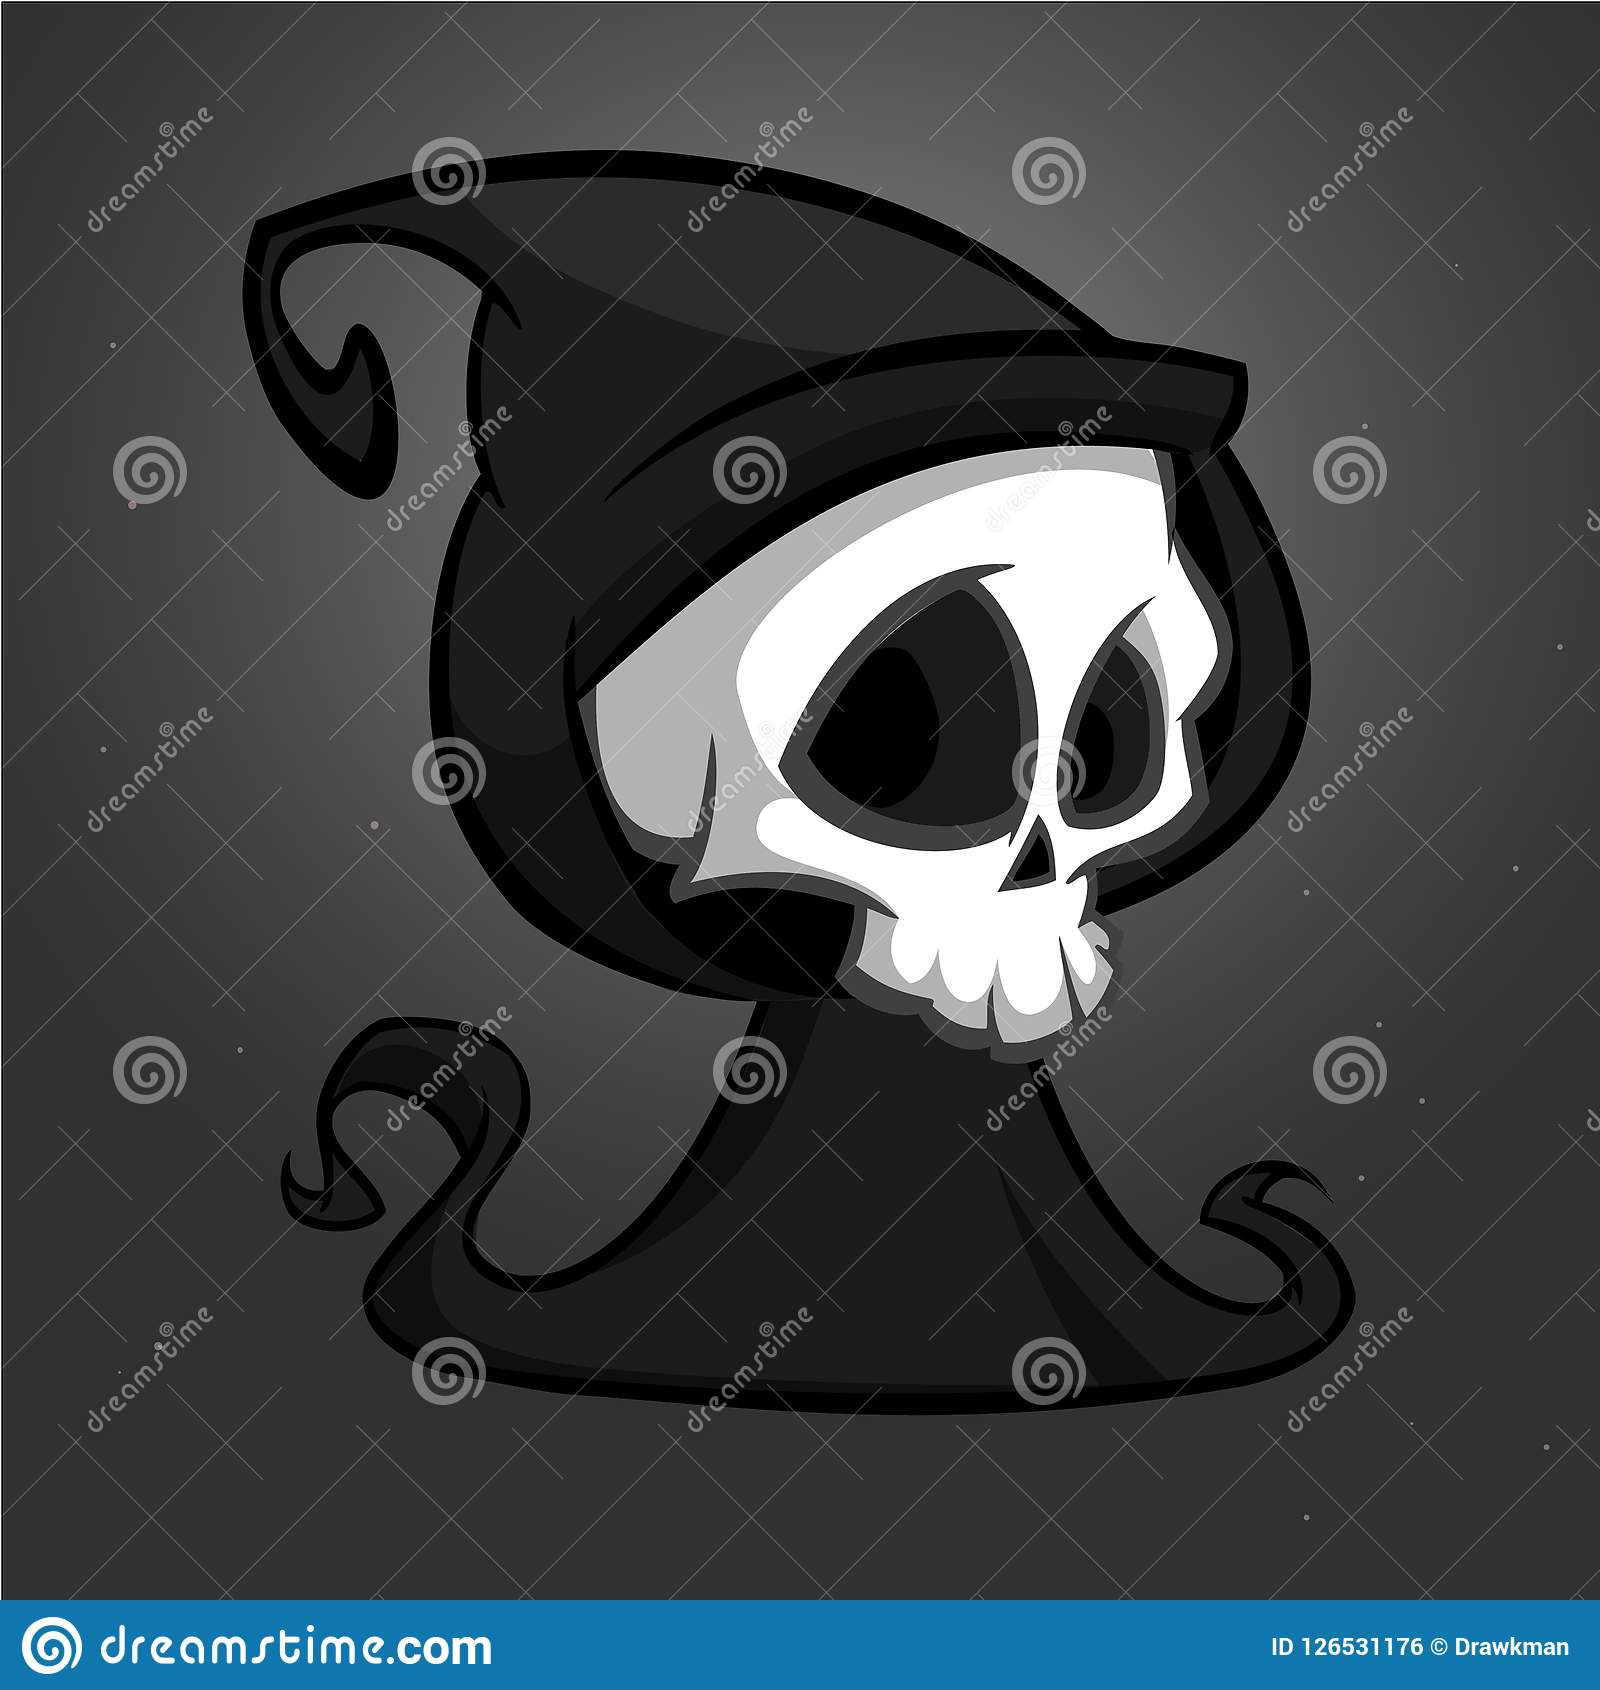 Death skeleton character suitable for Halloween, logo, religion and tattoo design.